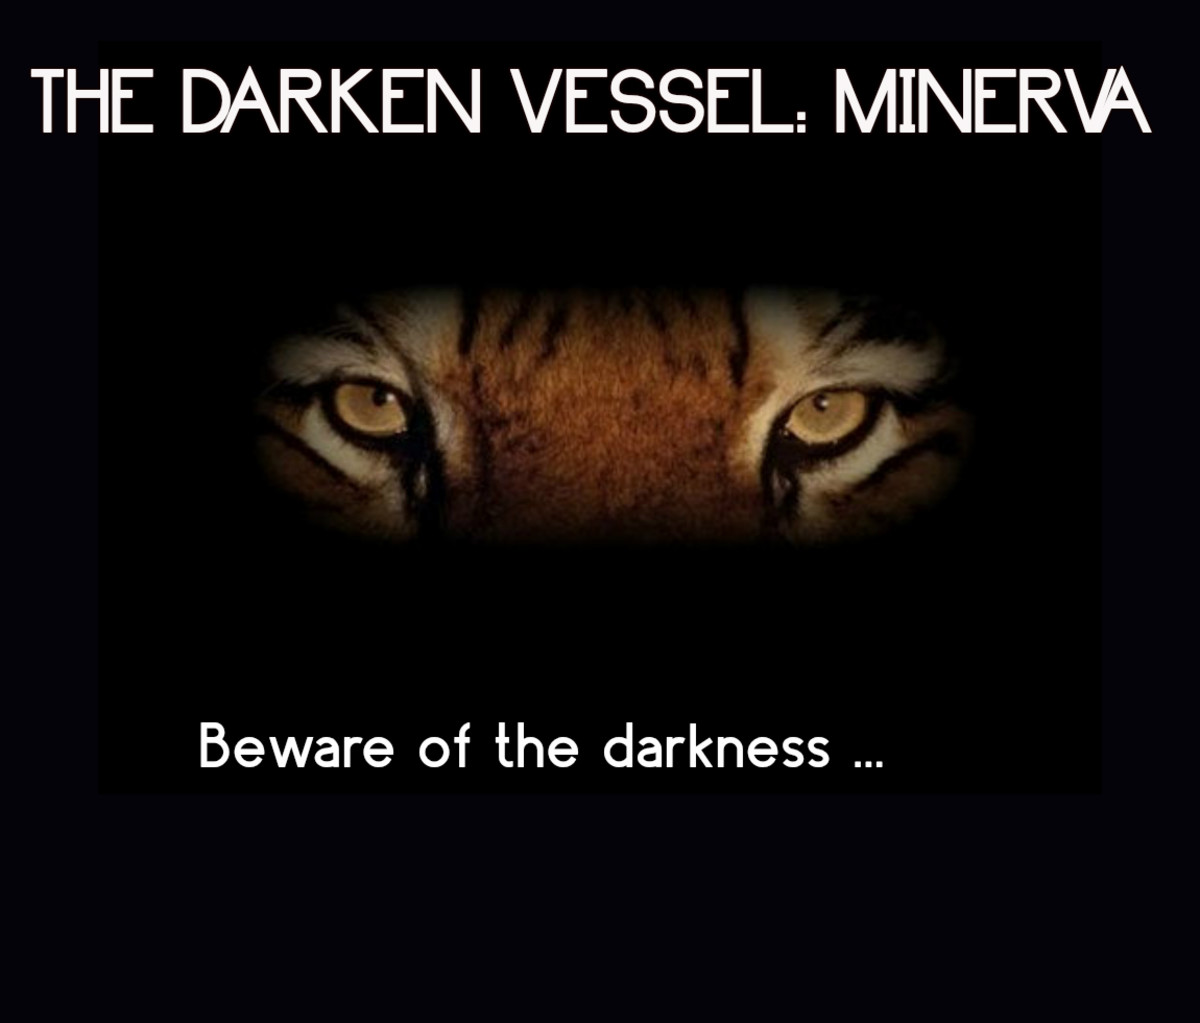 The Darken Vessel: Minerva 9